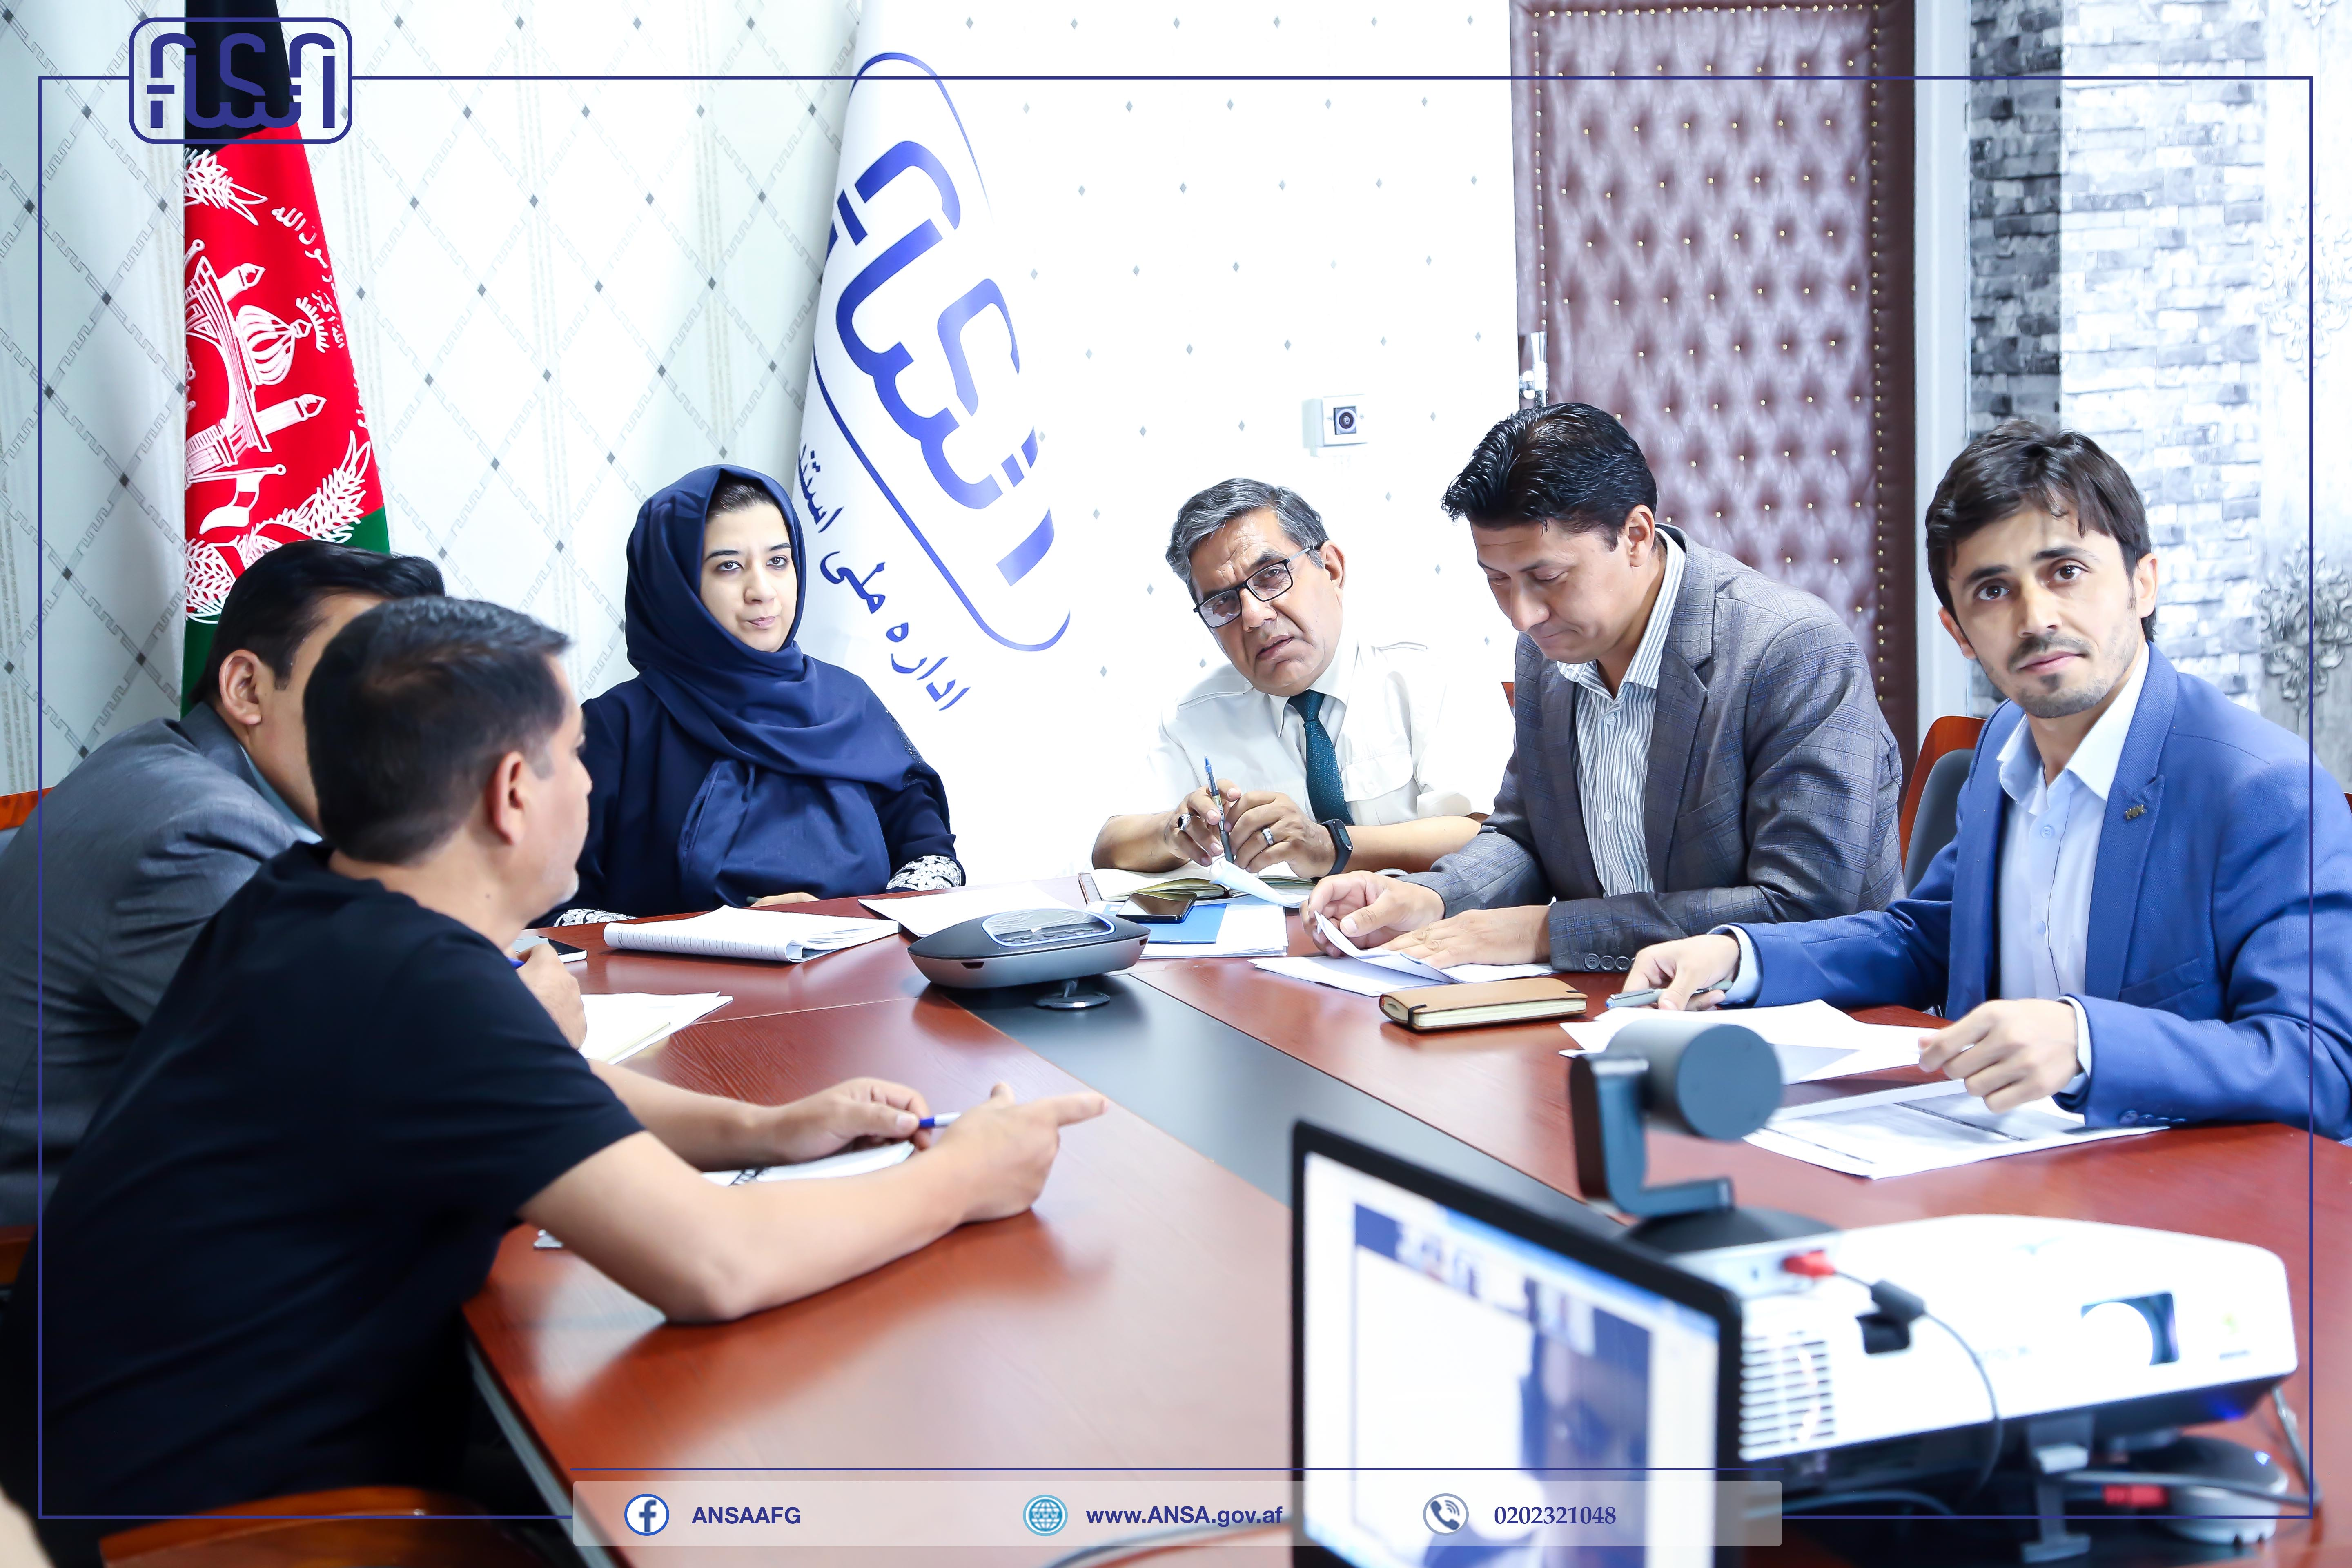 The meeting was held online between the Afghan National Standards Authority and the Uzbek Standard and Metrology Agency.